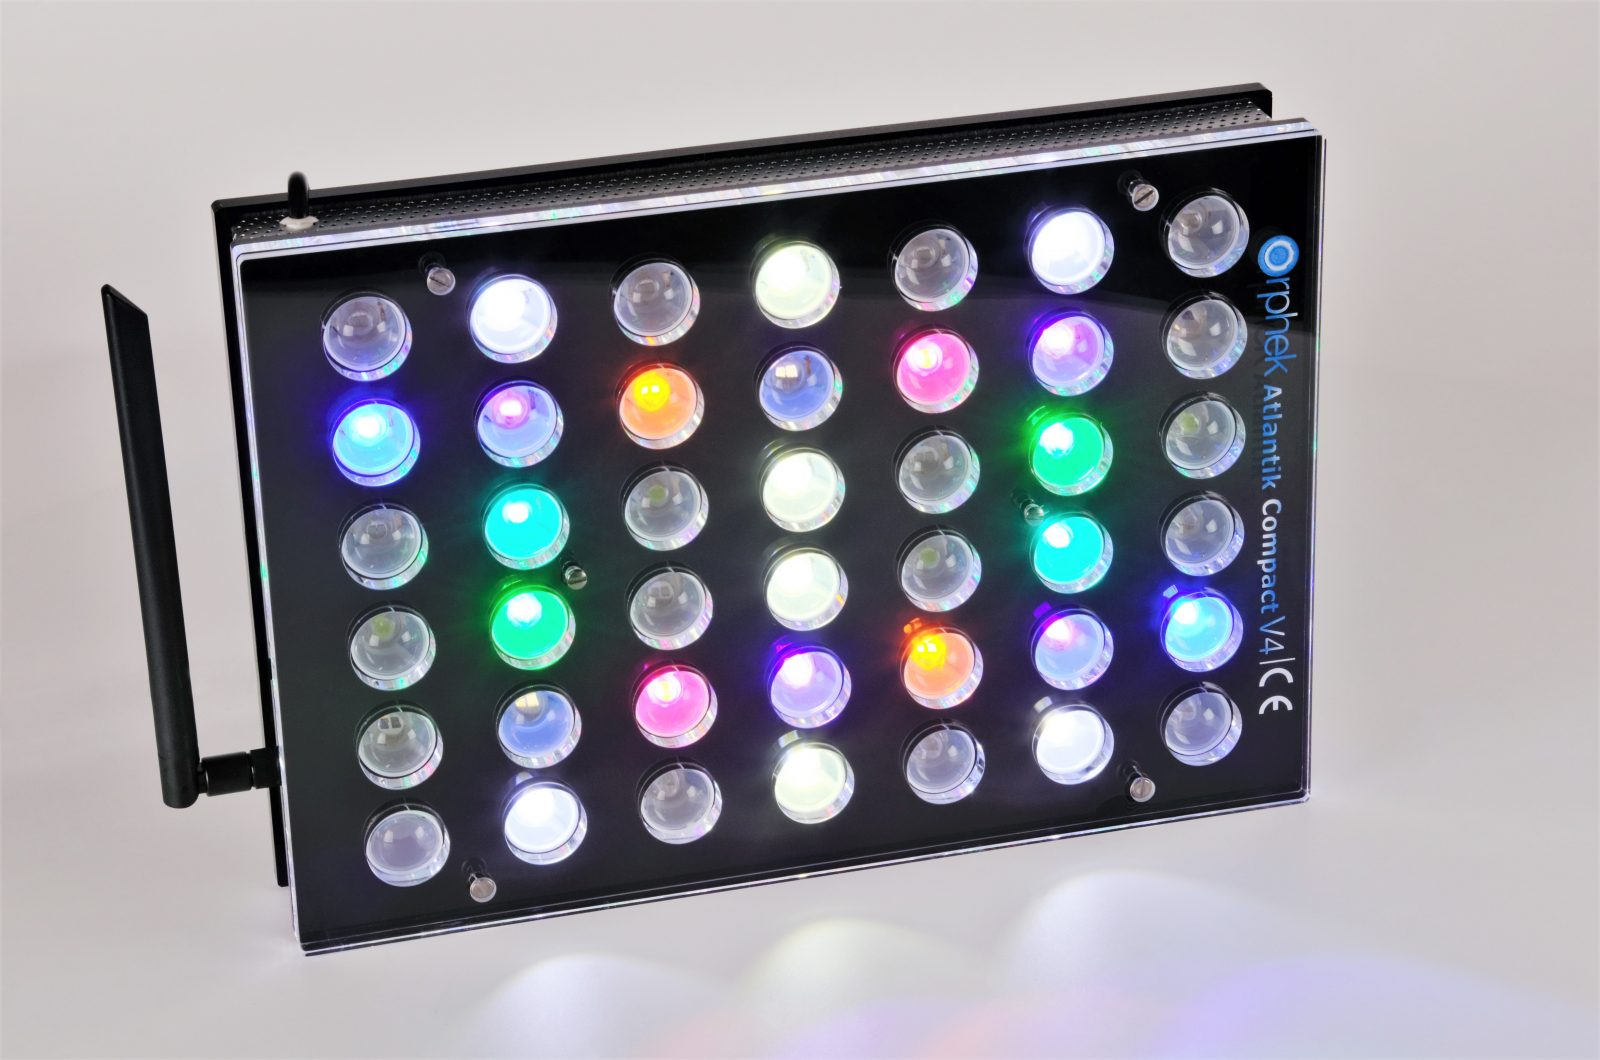 Orphek-Aquarium-LED-Lighting-Atlantik-קומפקט- V4-light-on-Channel 1 + 3 + 4